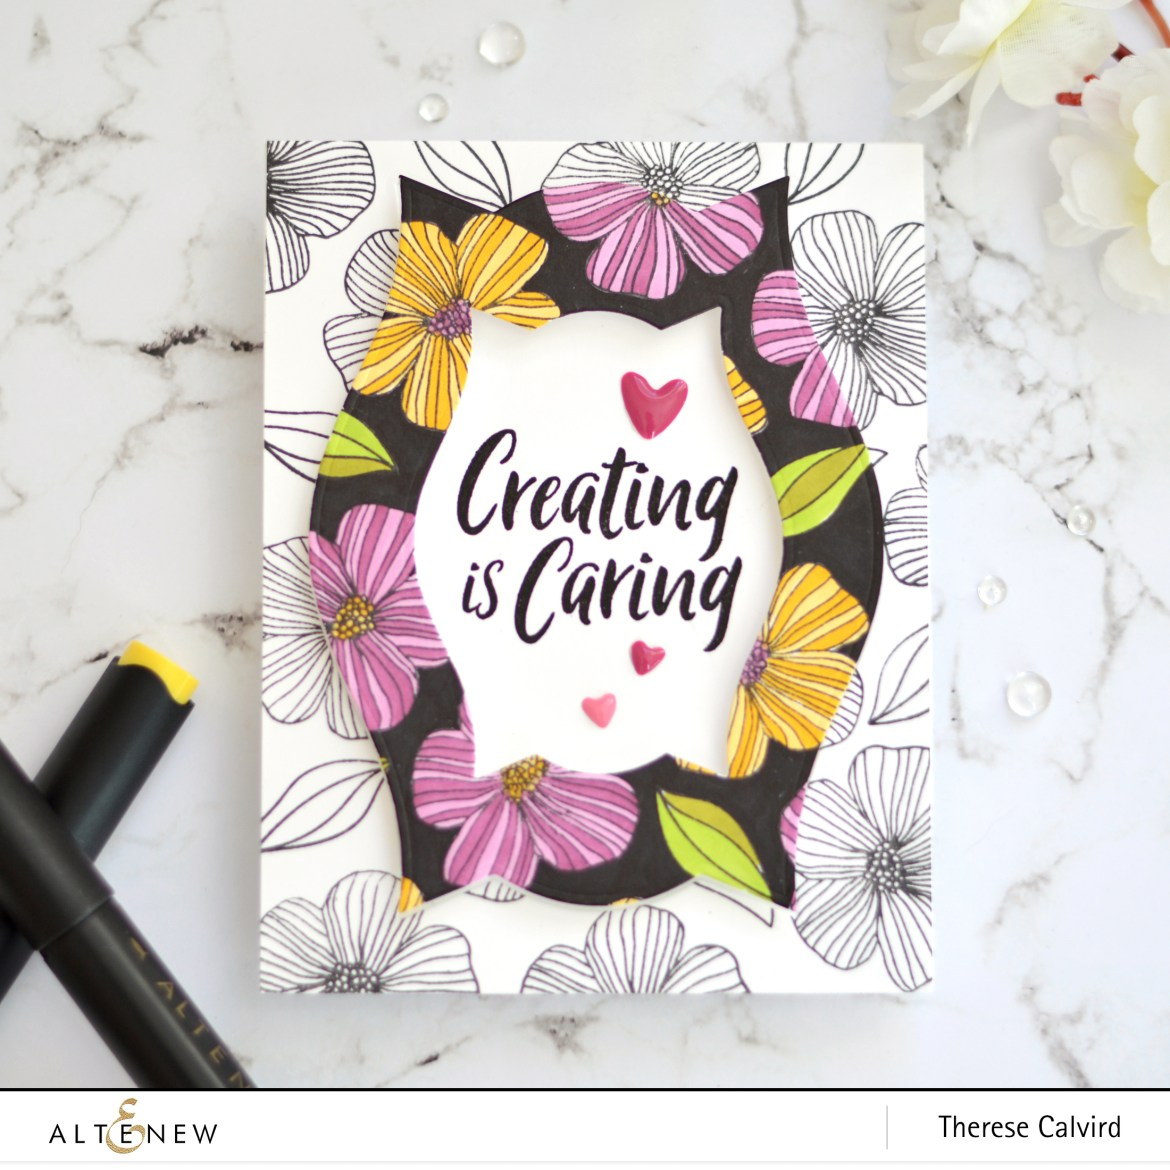 Altenew - Charming Doodles - Take 2 With Therese (card video) 1 copy